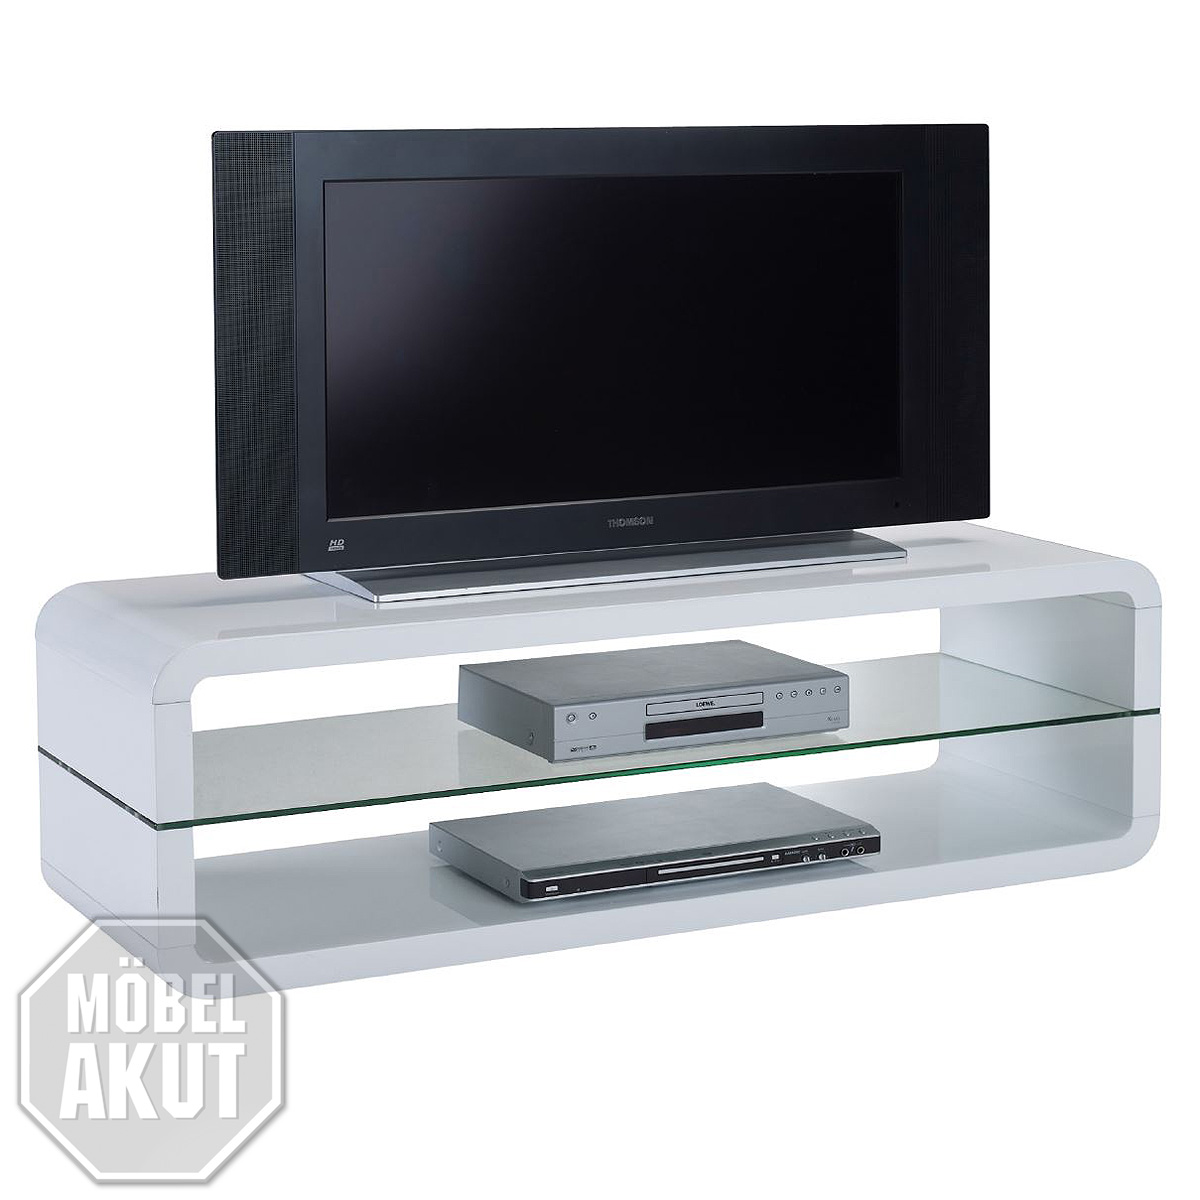 tv board anton tv schrank lowboard hifi m bel in mdf wei hochglanz und glas esg ebay. Black Bedroom Furniture Sets. Home Design Ideas